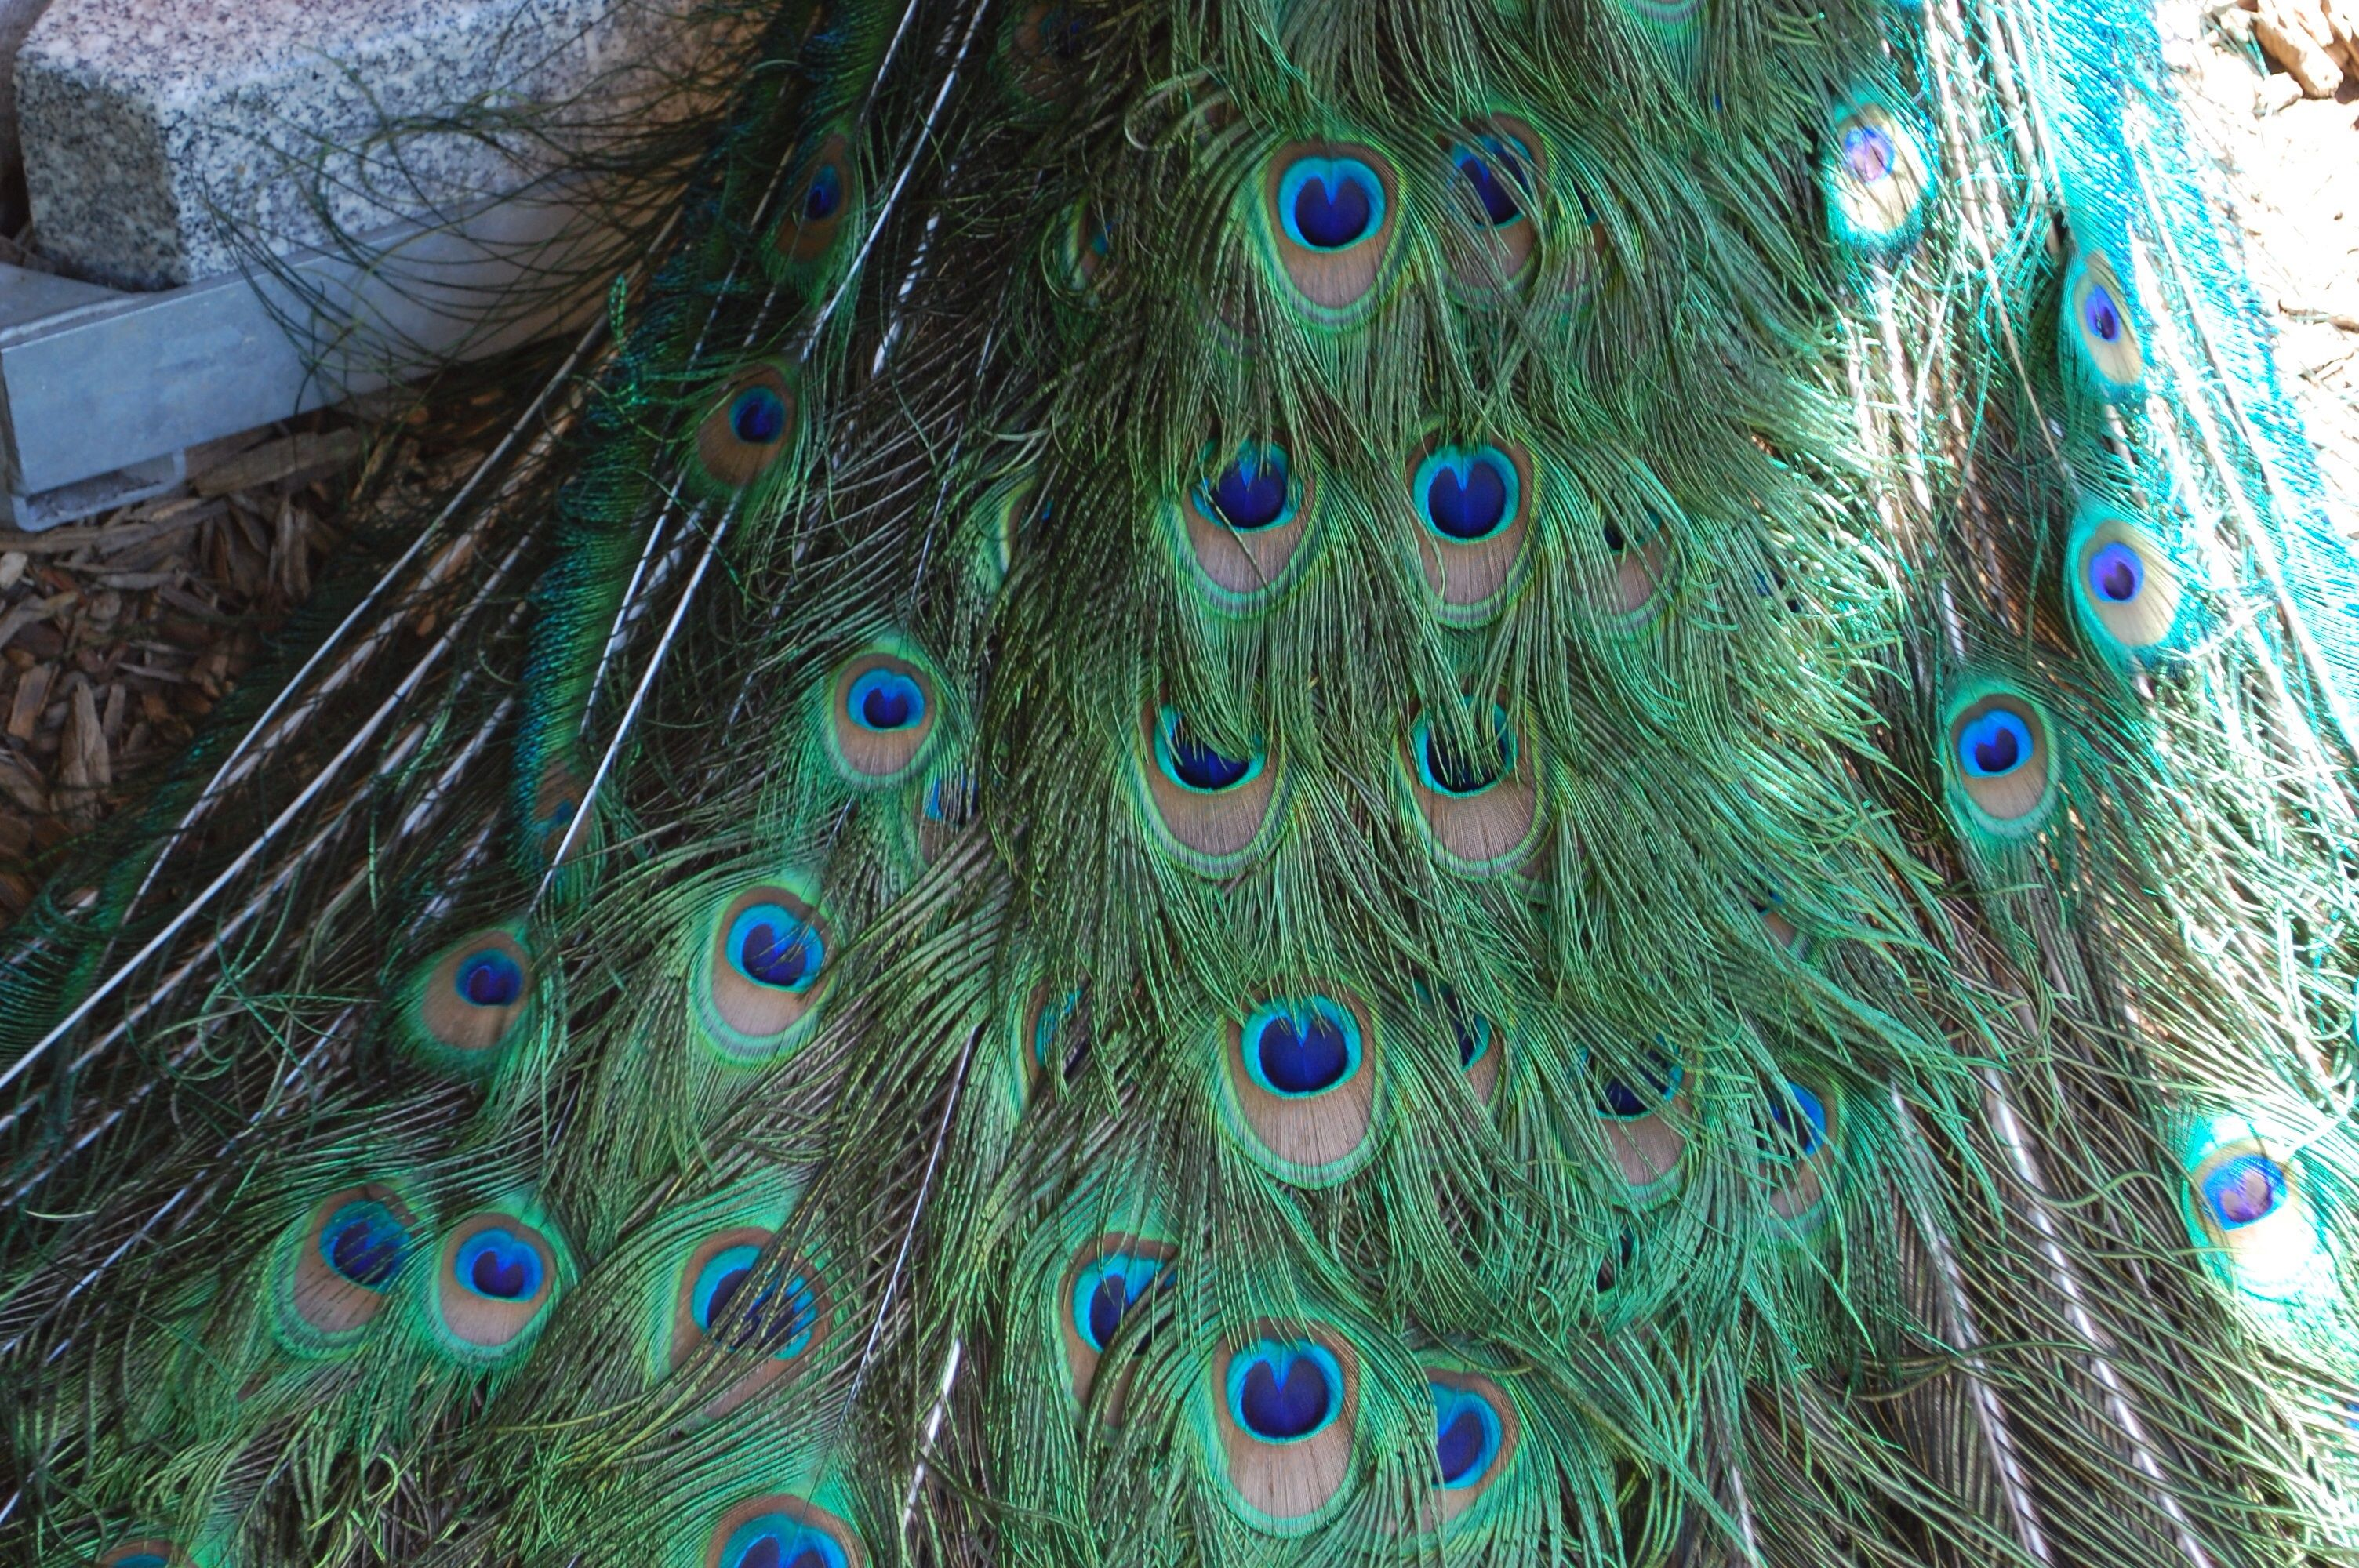 Peacock feathers photos pinterest dream explanation and peacocks peacock feathers biocorpaavc Gallery